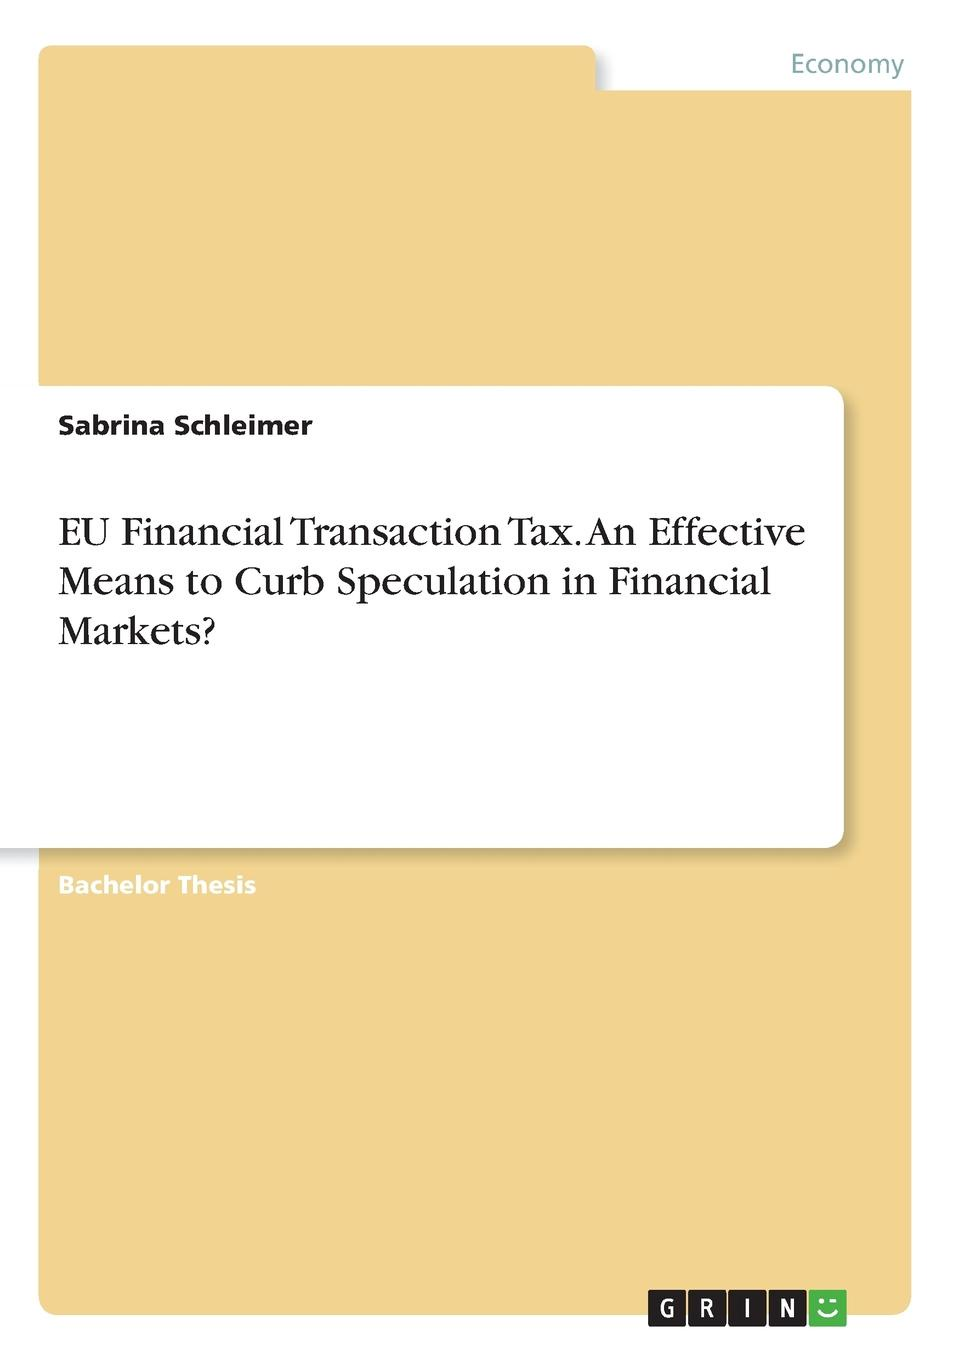 Sabrina Schleimer EU Financial Transaction Tax. An Effective Means to Curb Speculation in Financial Markets.